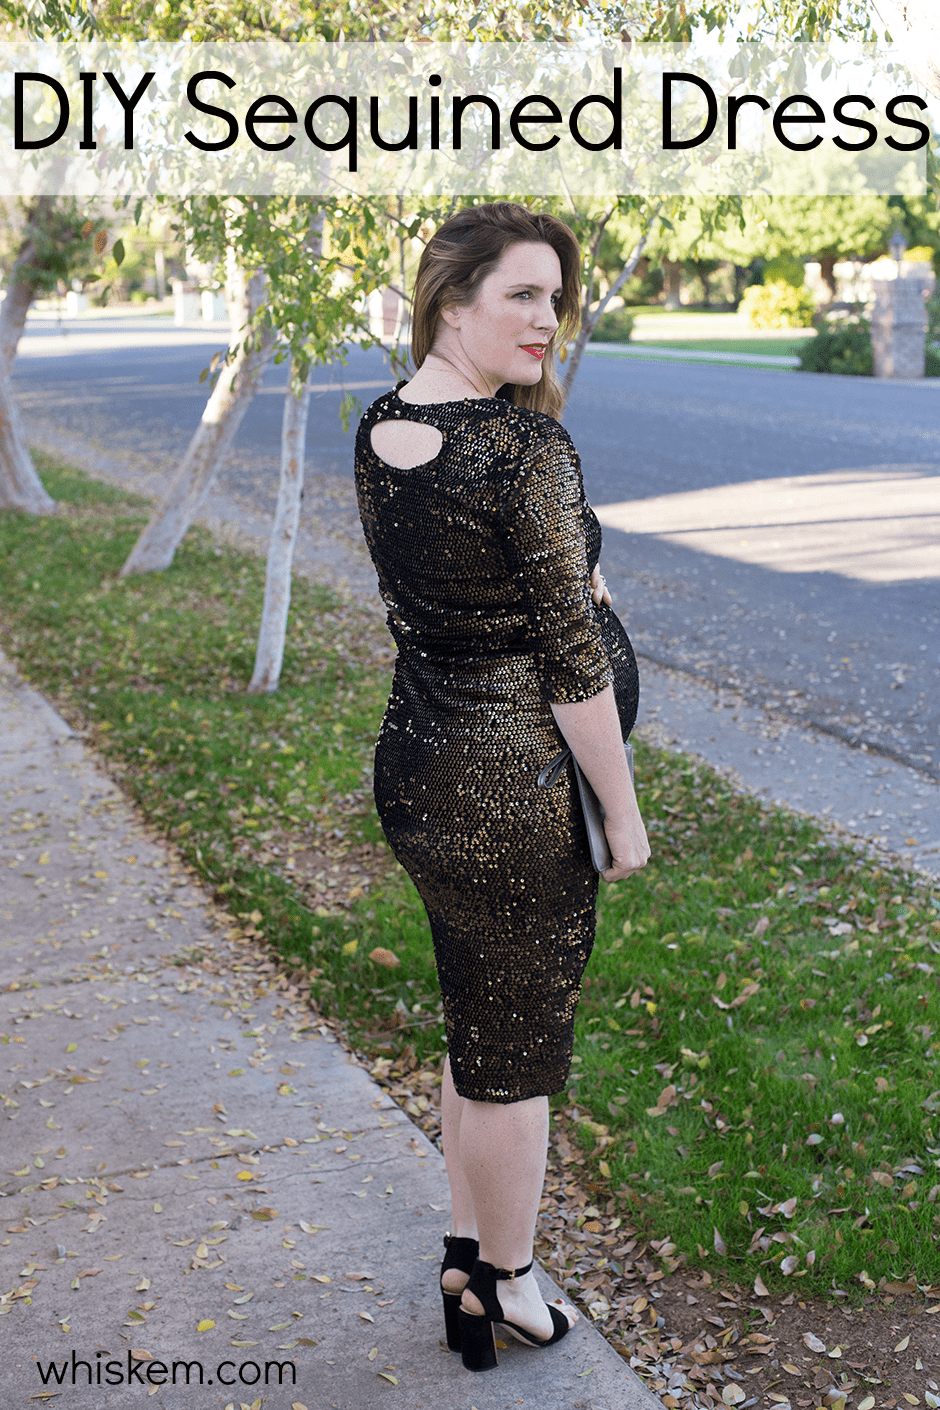 Diy sequined party dress bonnie and blithe for Diy party dress